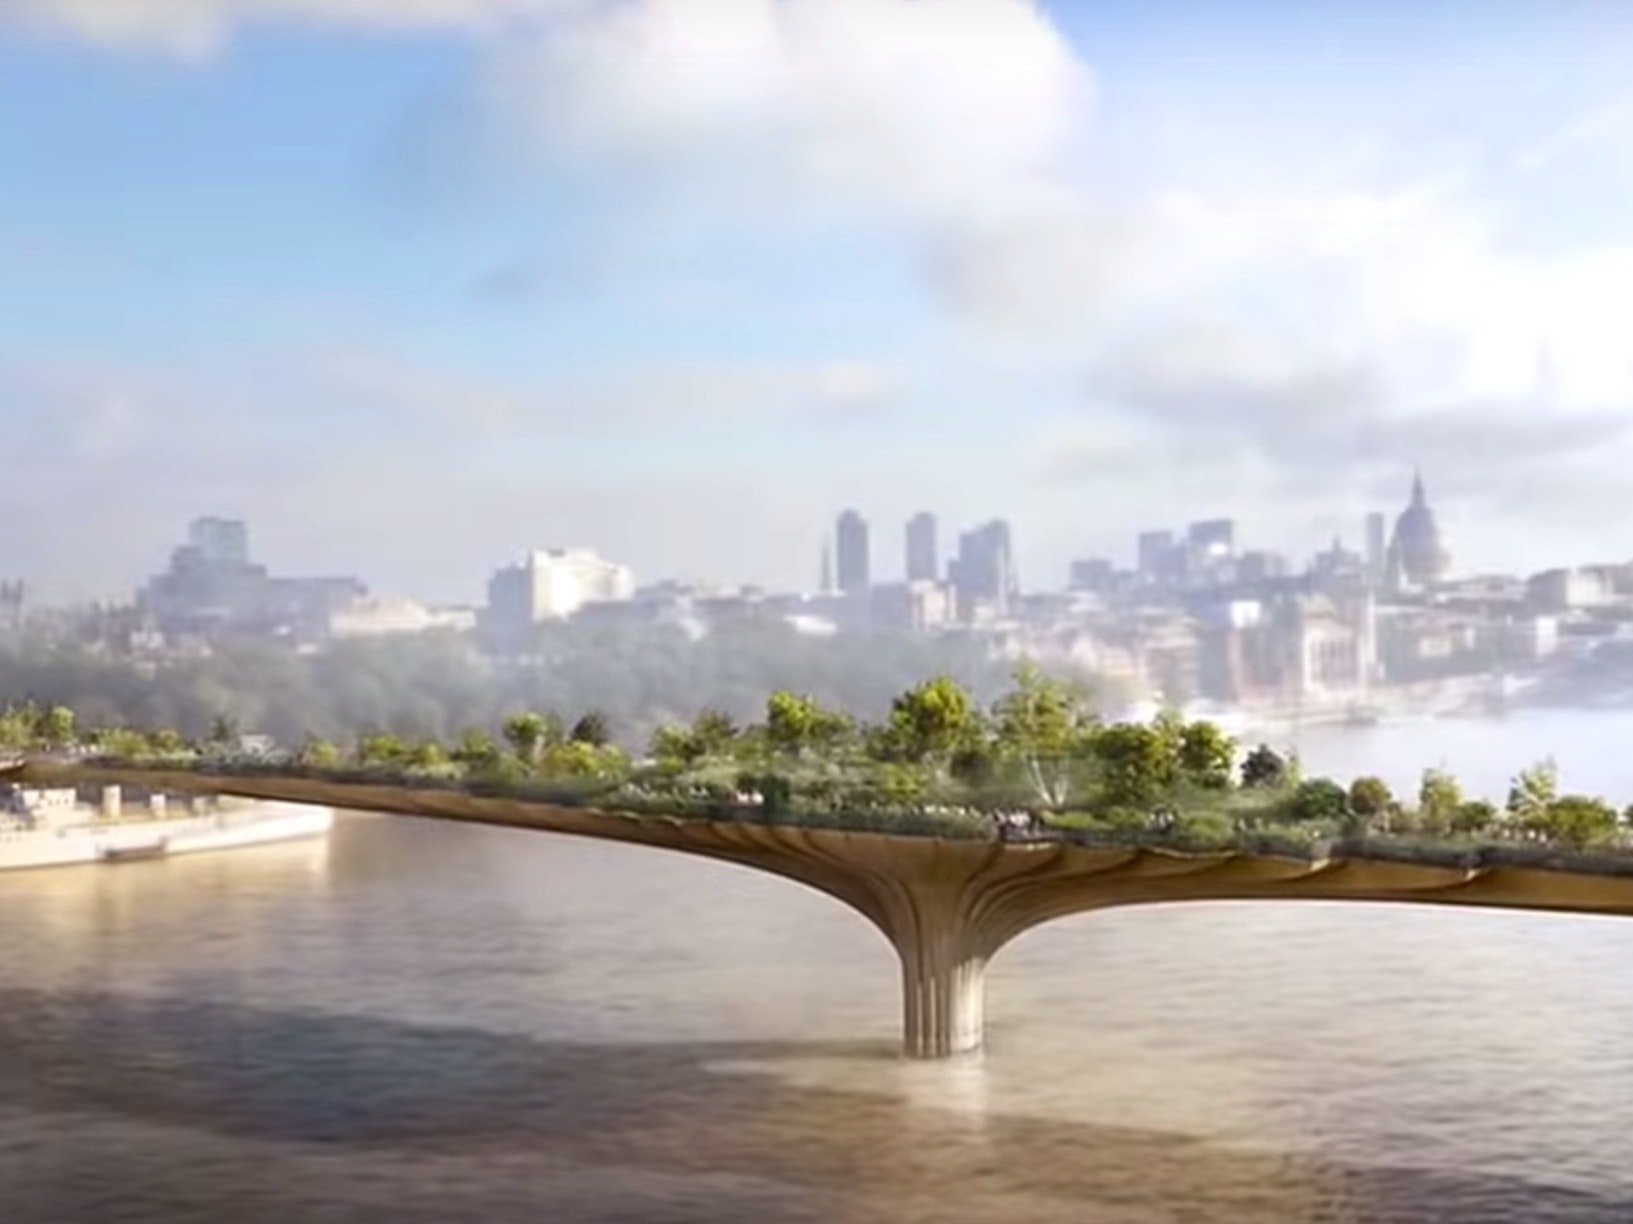 London's Controversial Garden Bridge Gets Support From a New Political Power